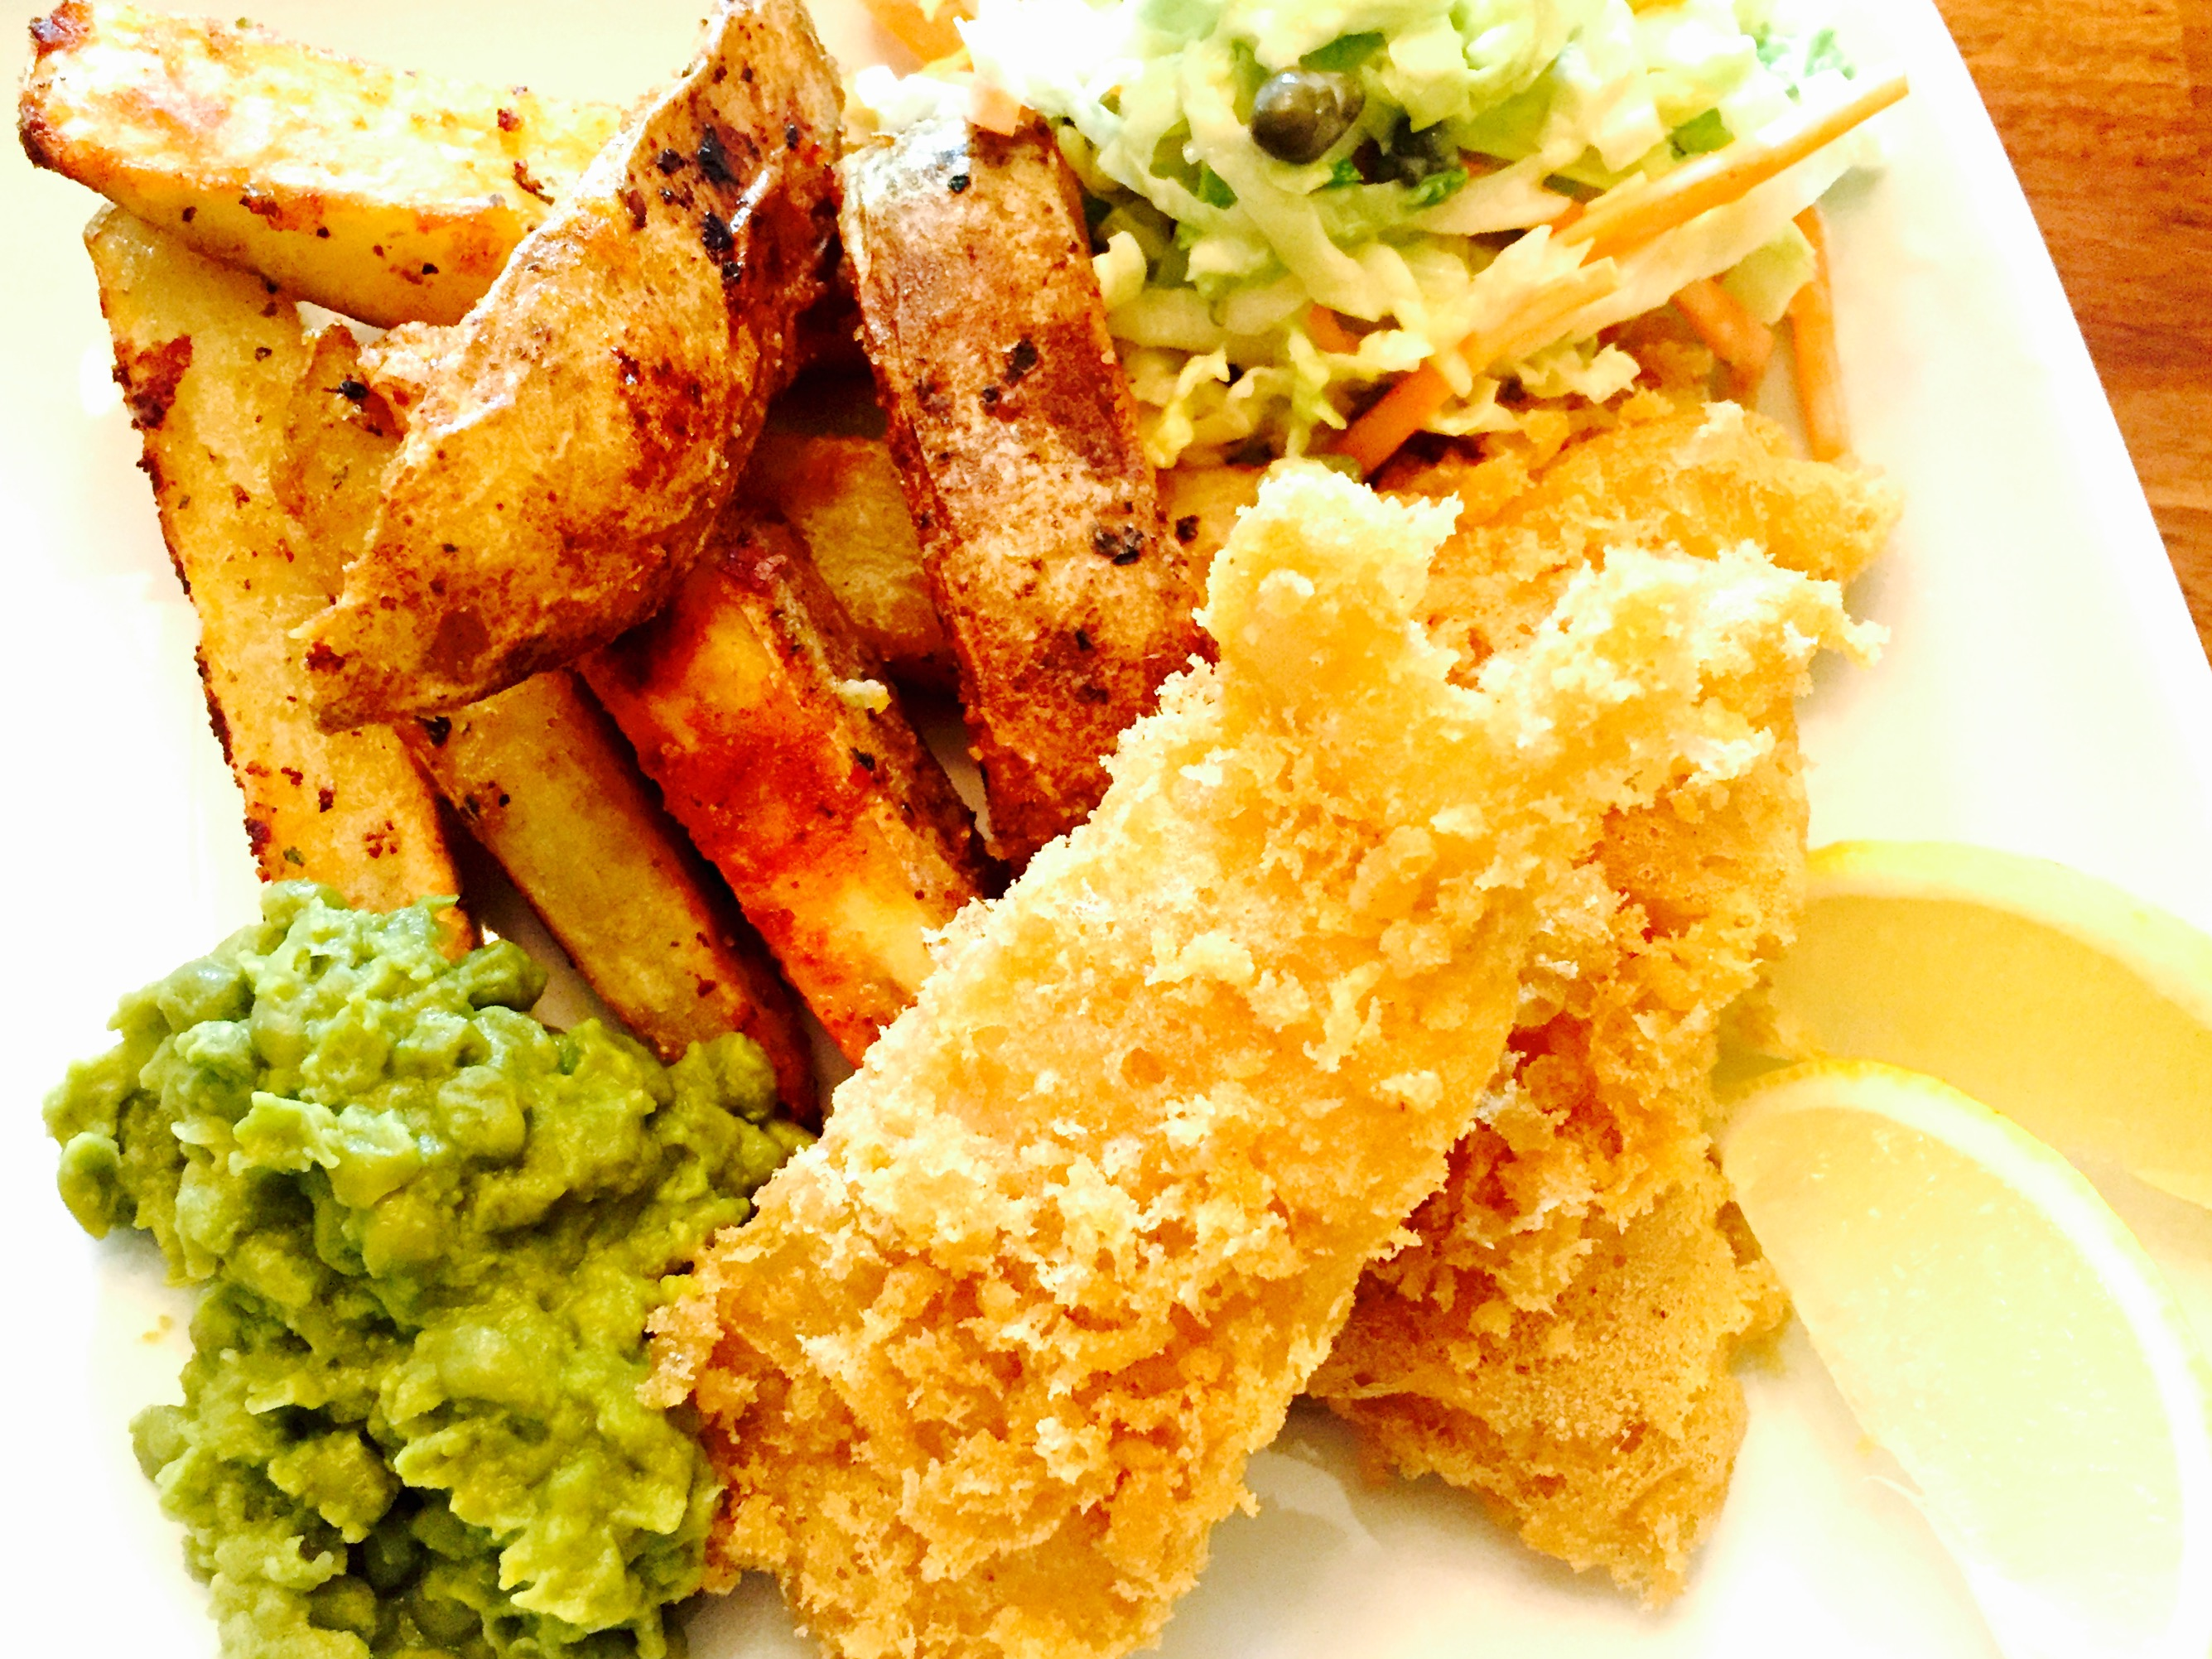 Gluten free fish and chips with mushy peas home cut fries for Gluten free fish and chips